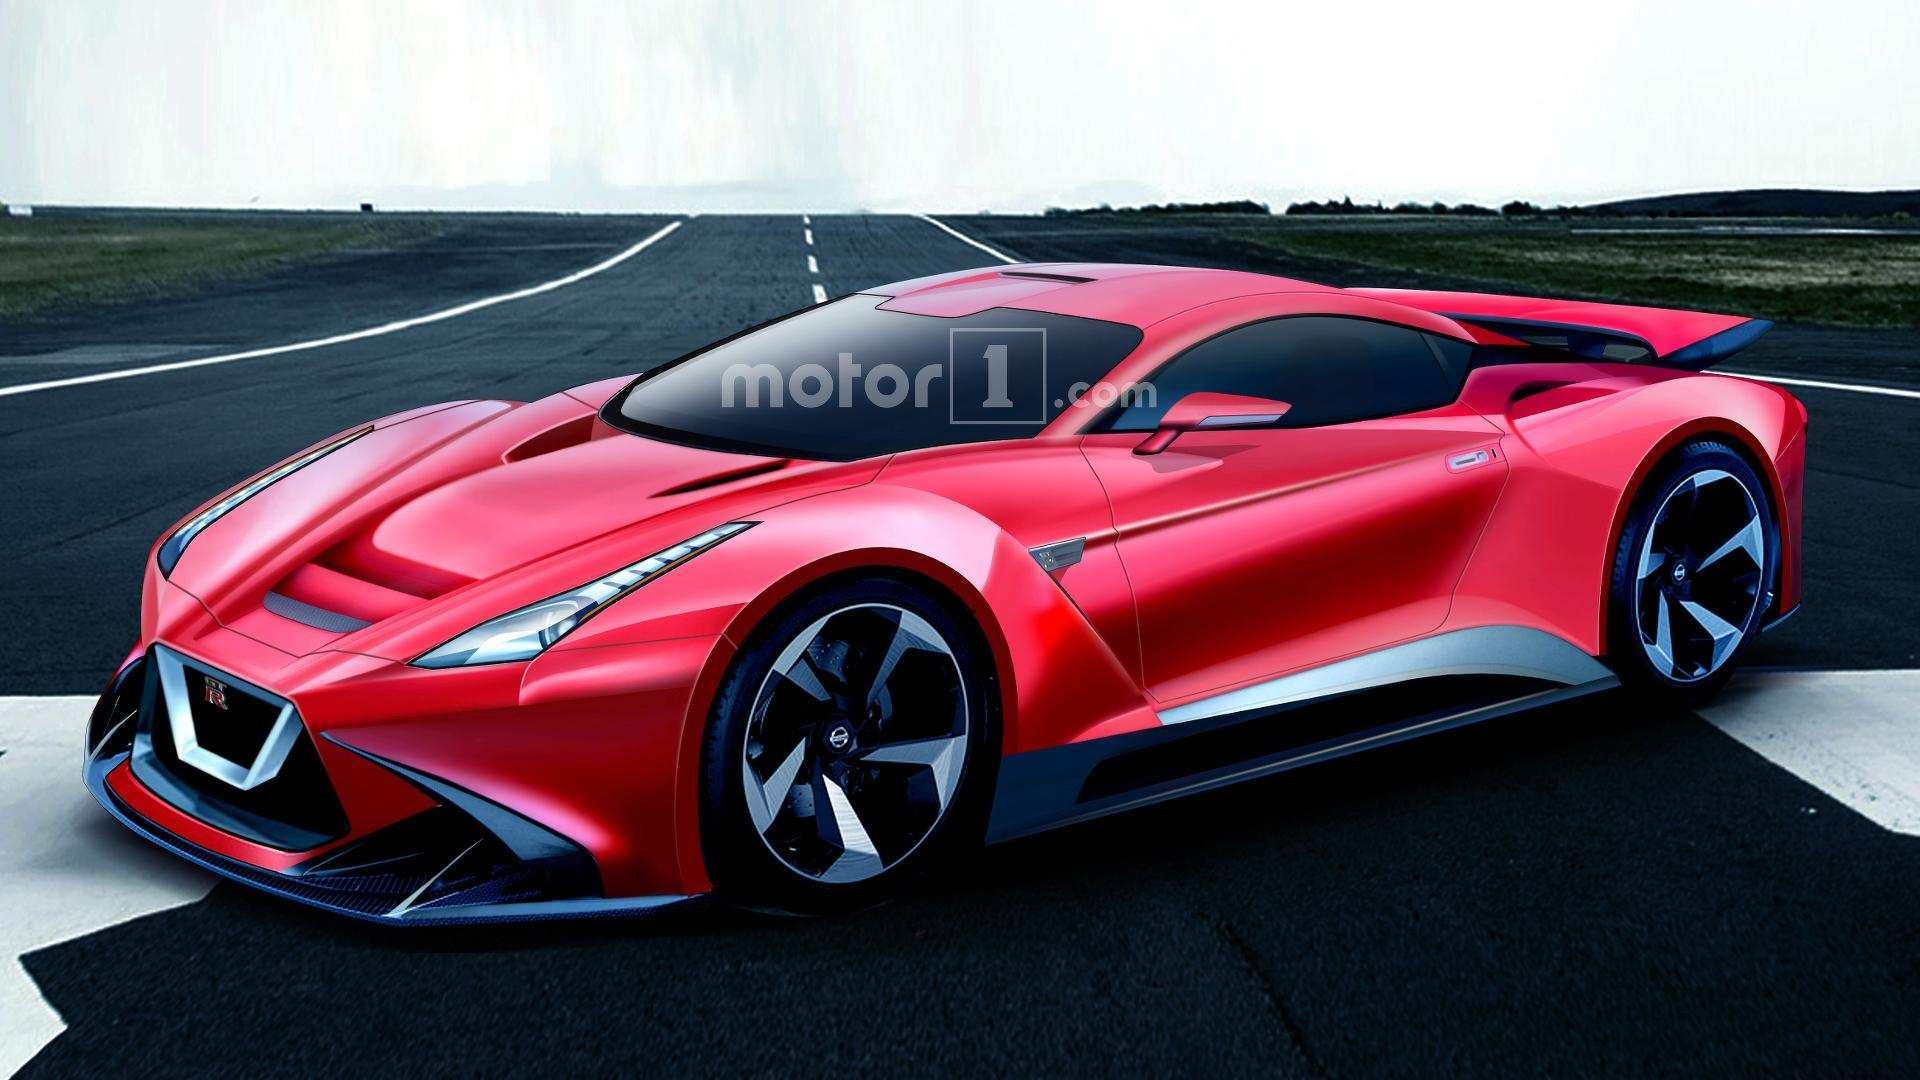 48 All New Nissan Gt 2020 Pricing for Nissan Gt 2020